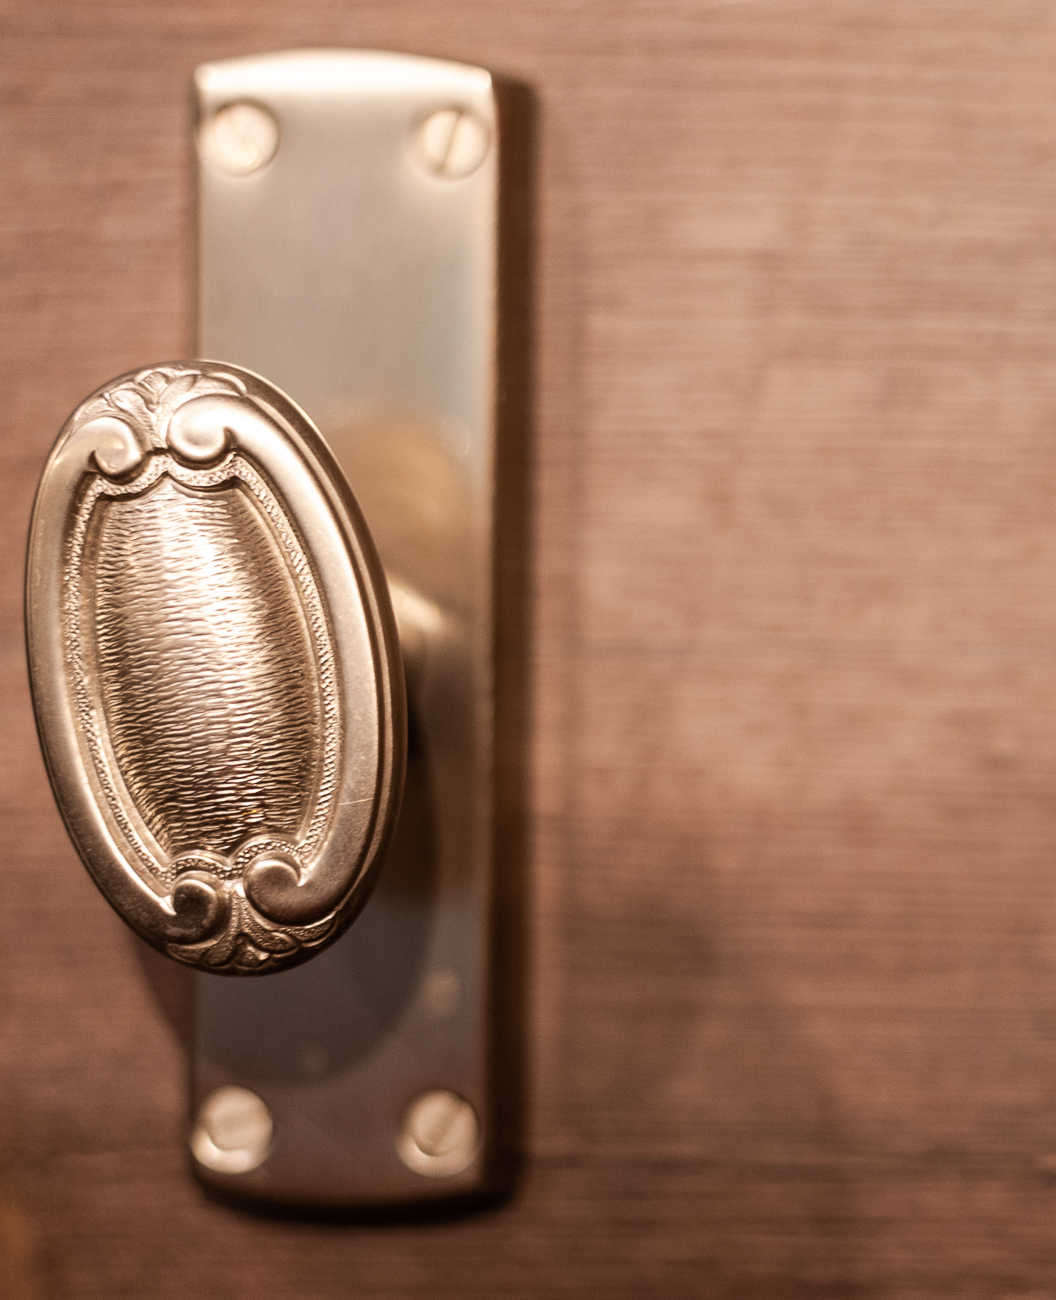 They supply all styles of door hardware such as exterior handle sets, interior knobs & levers, hinges, portholes, etc. / Image: Kellie Coleman // Published: 10.1.20